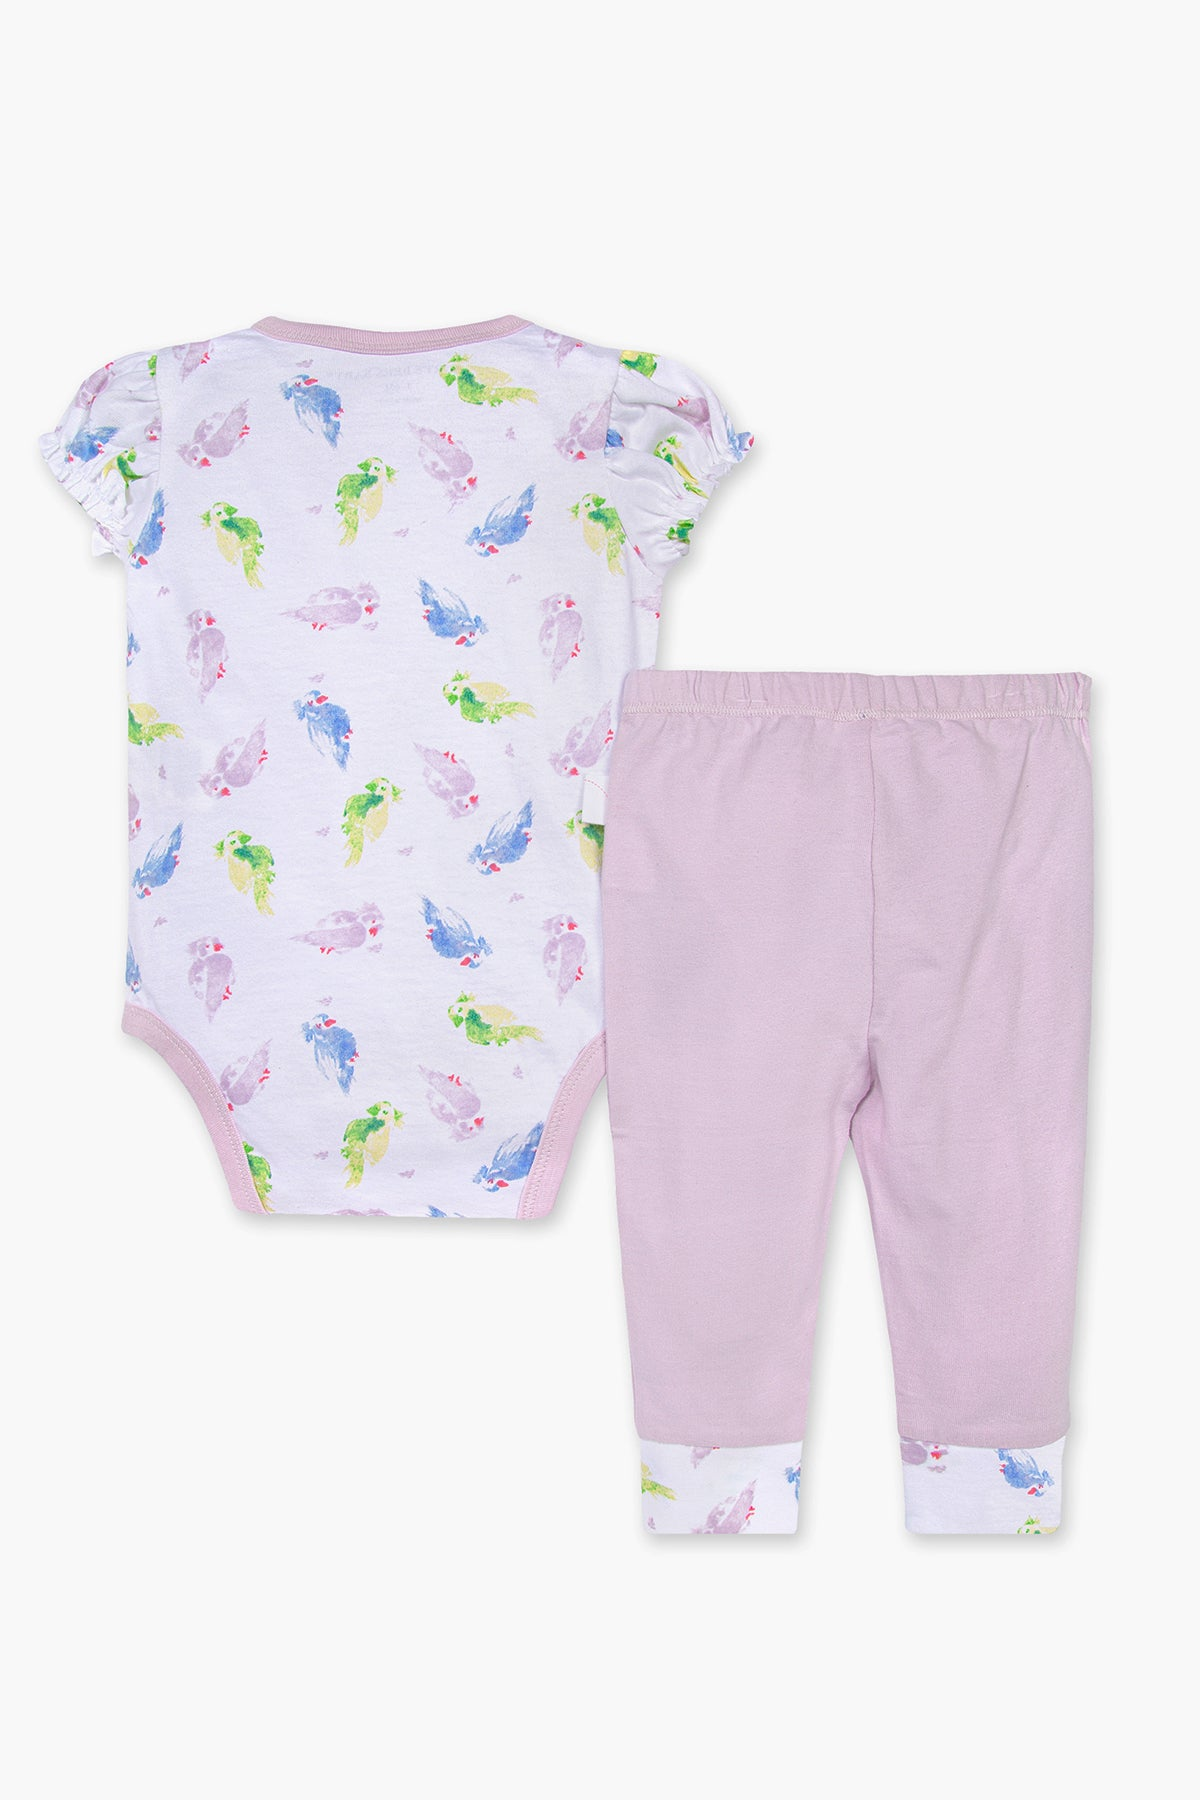 Burt's Bees Pretty Parakeet 2-Piece Baby Girls Set